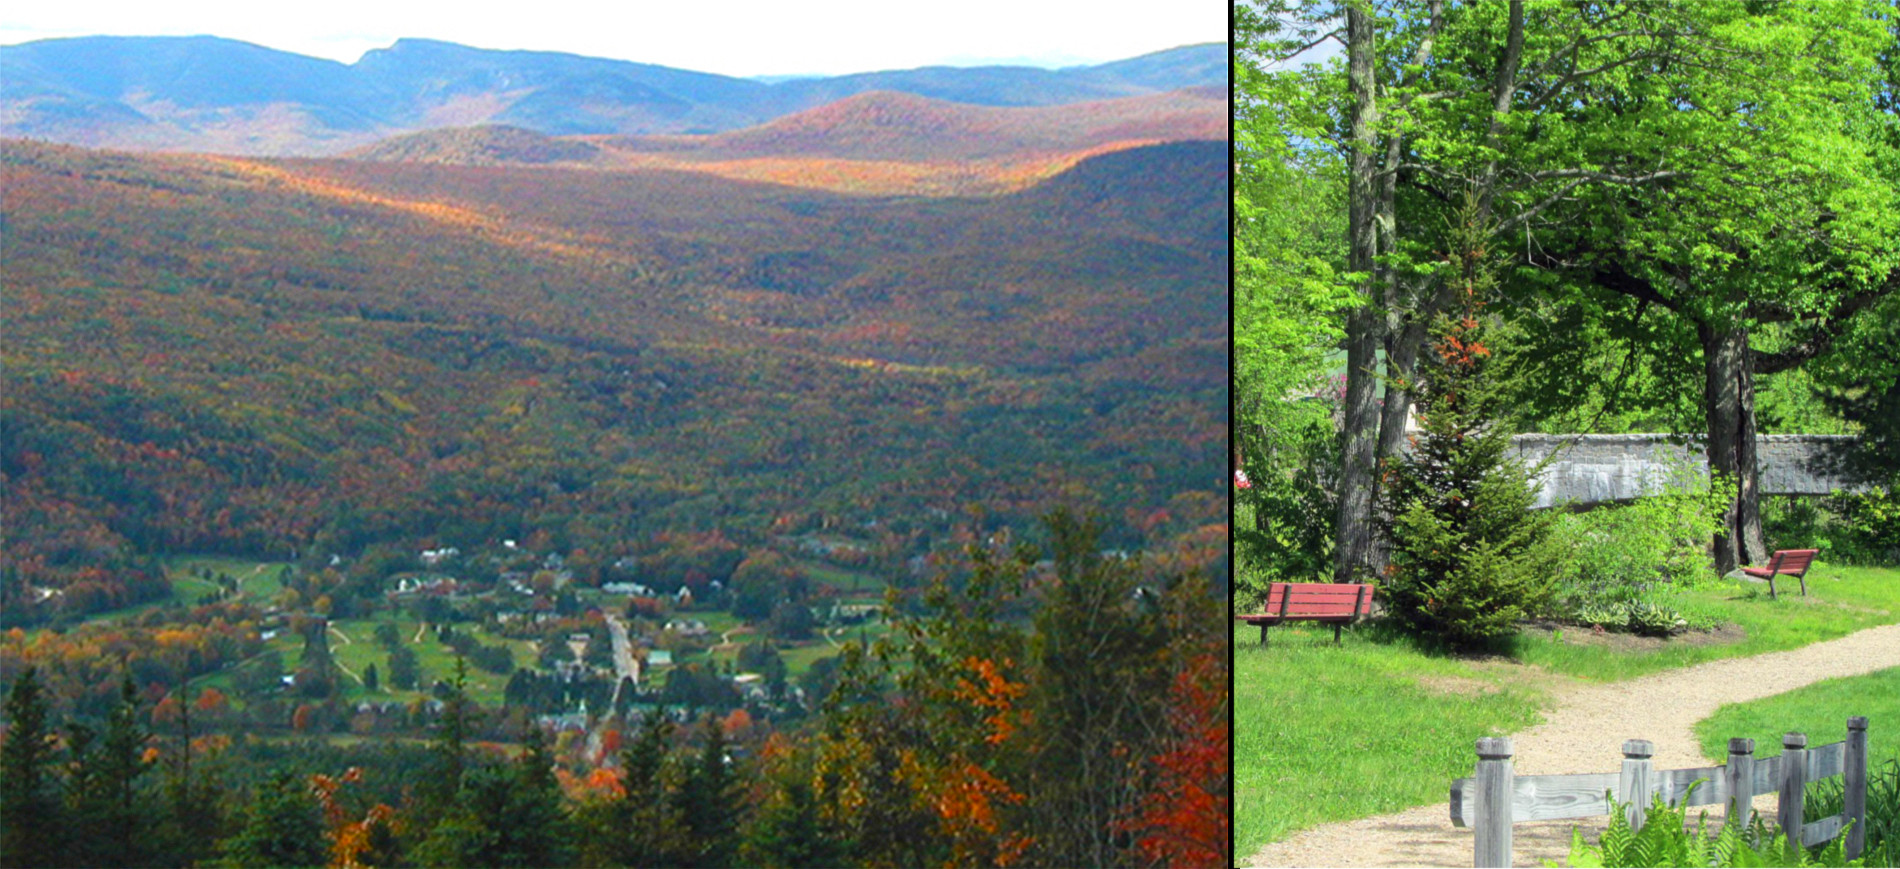 Overview of Jackson NH on left, walking path with benches on right